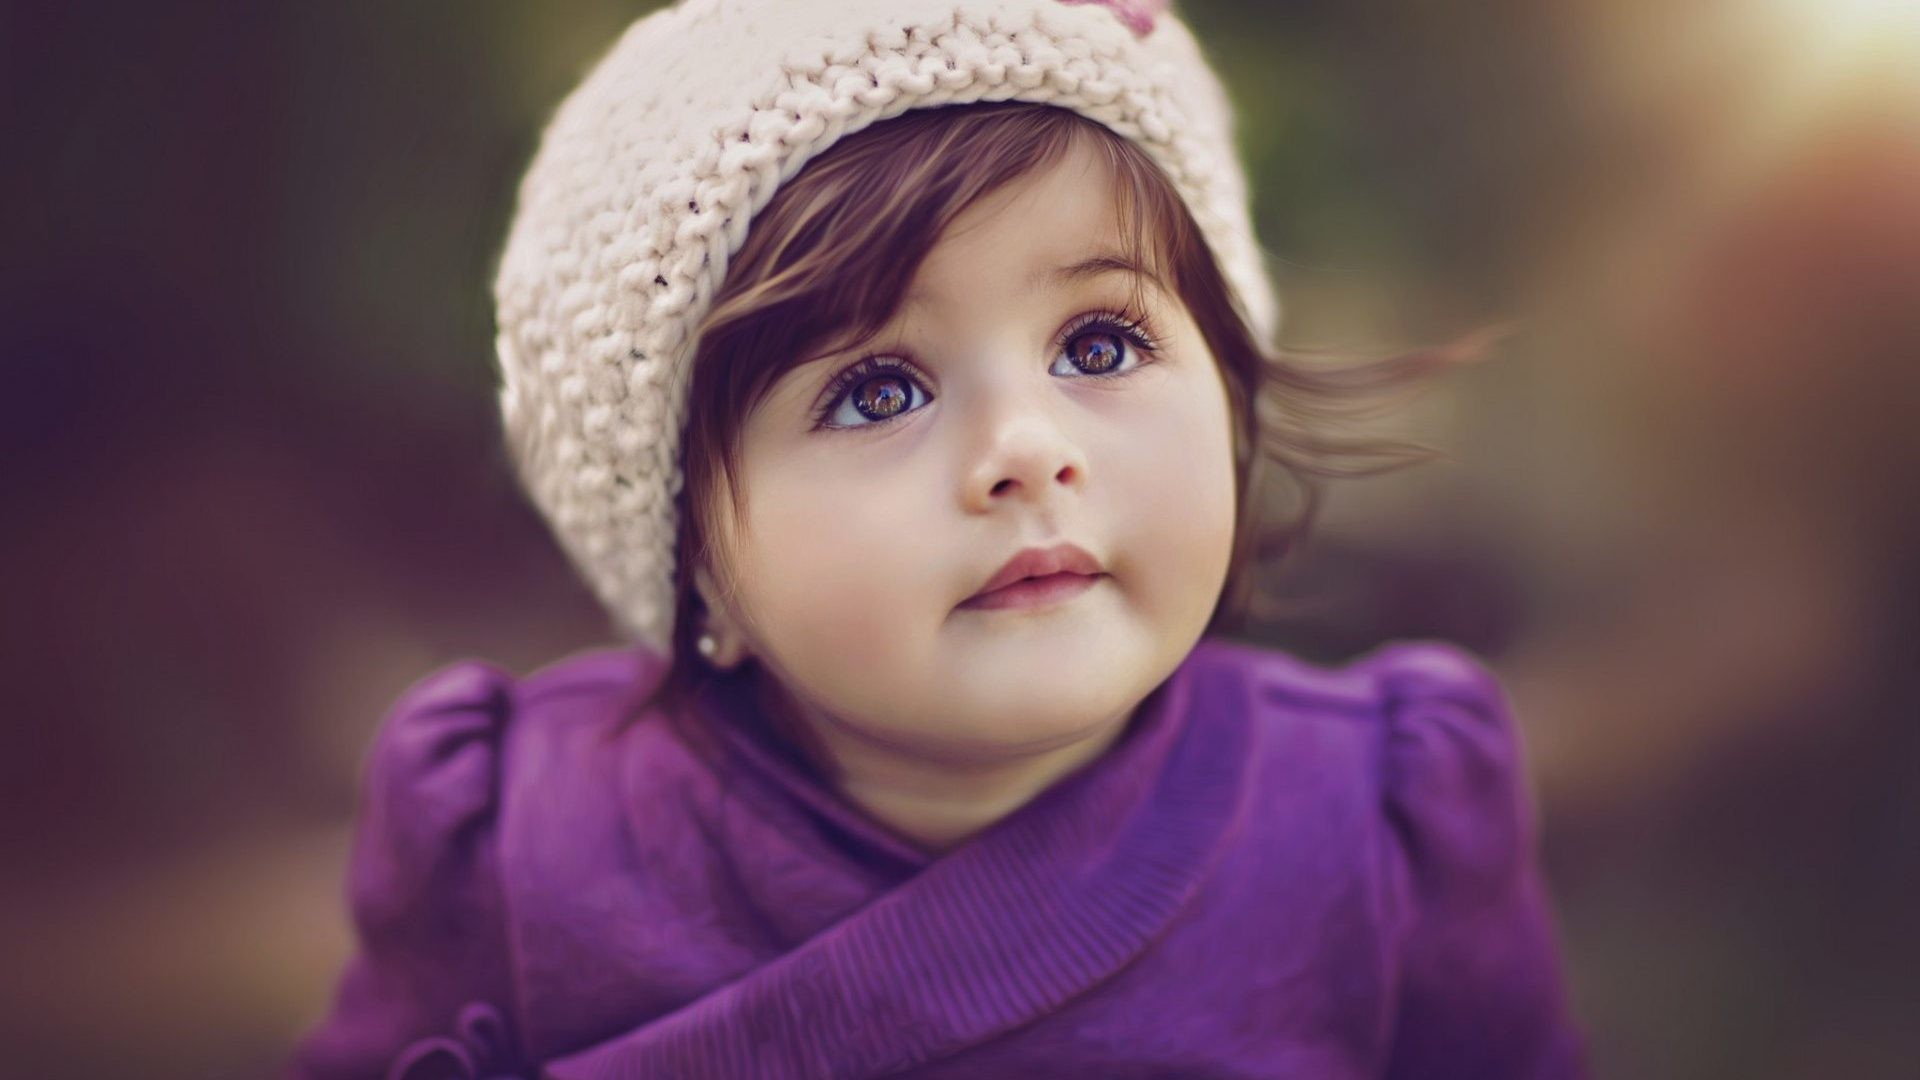 Download Cute Babies Wallpapers: Cute Baby Pics Wallpapers (64+ Images